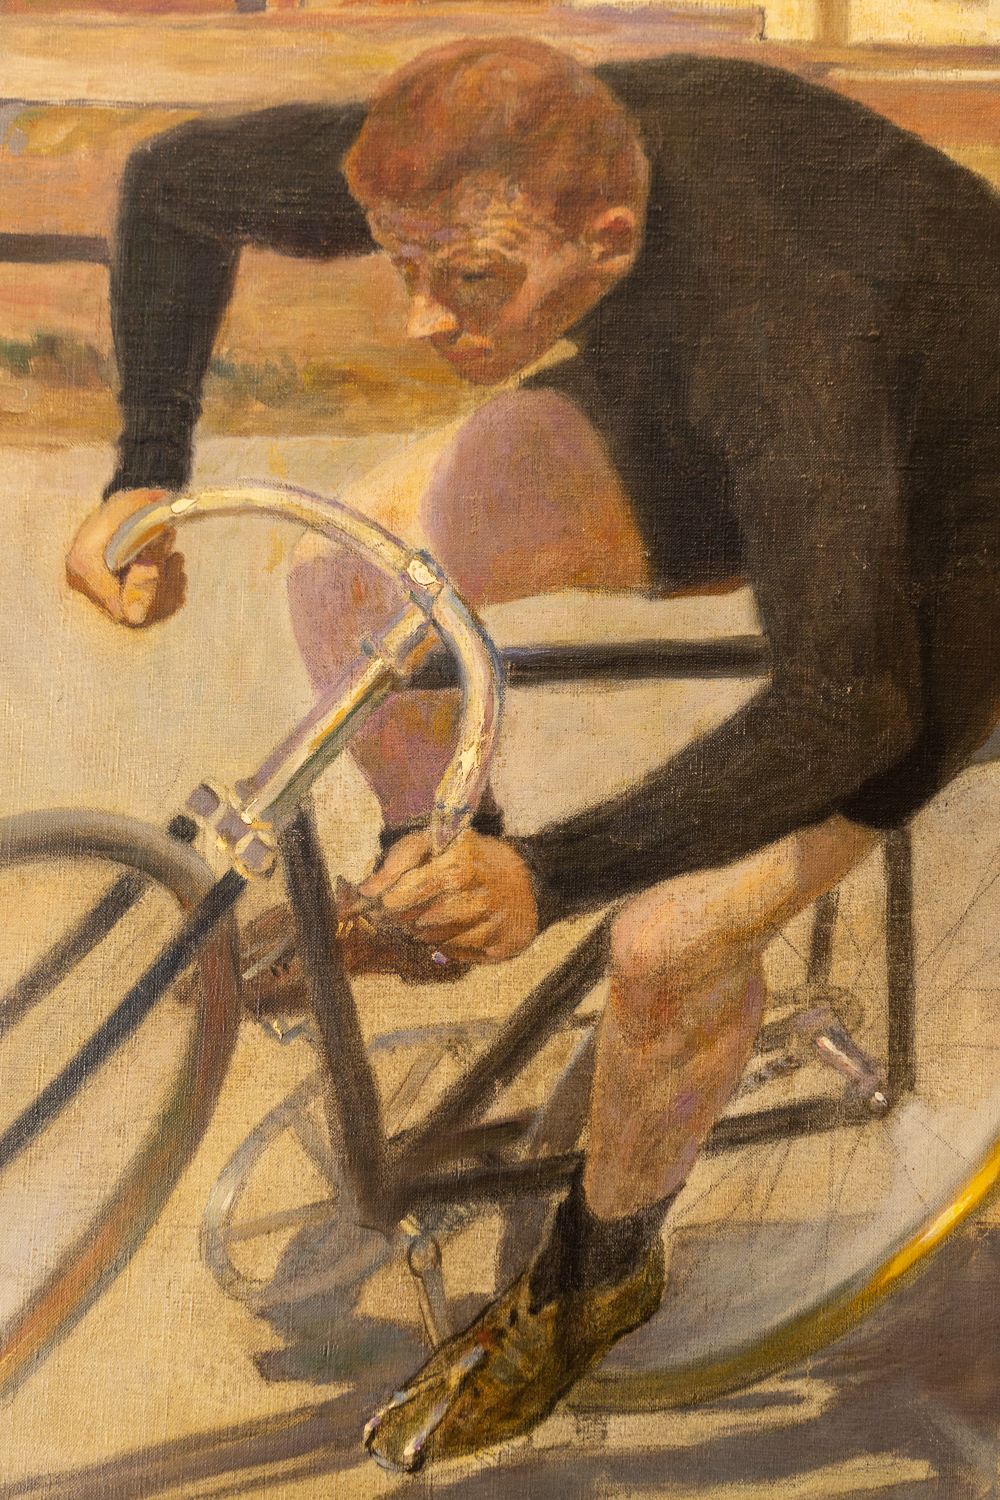 Oil Painting: Bicycle Racer